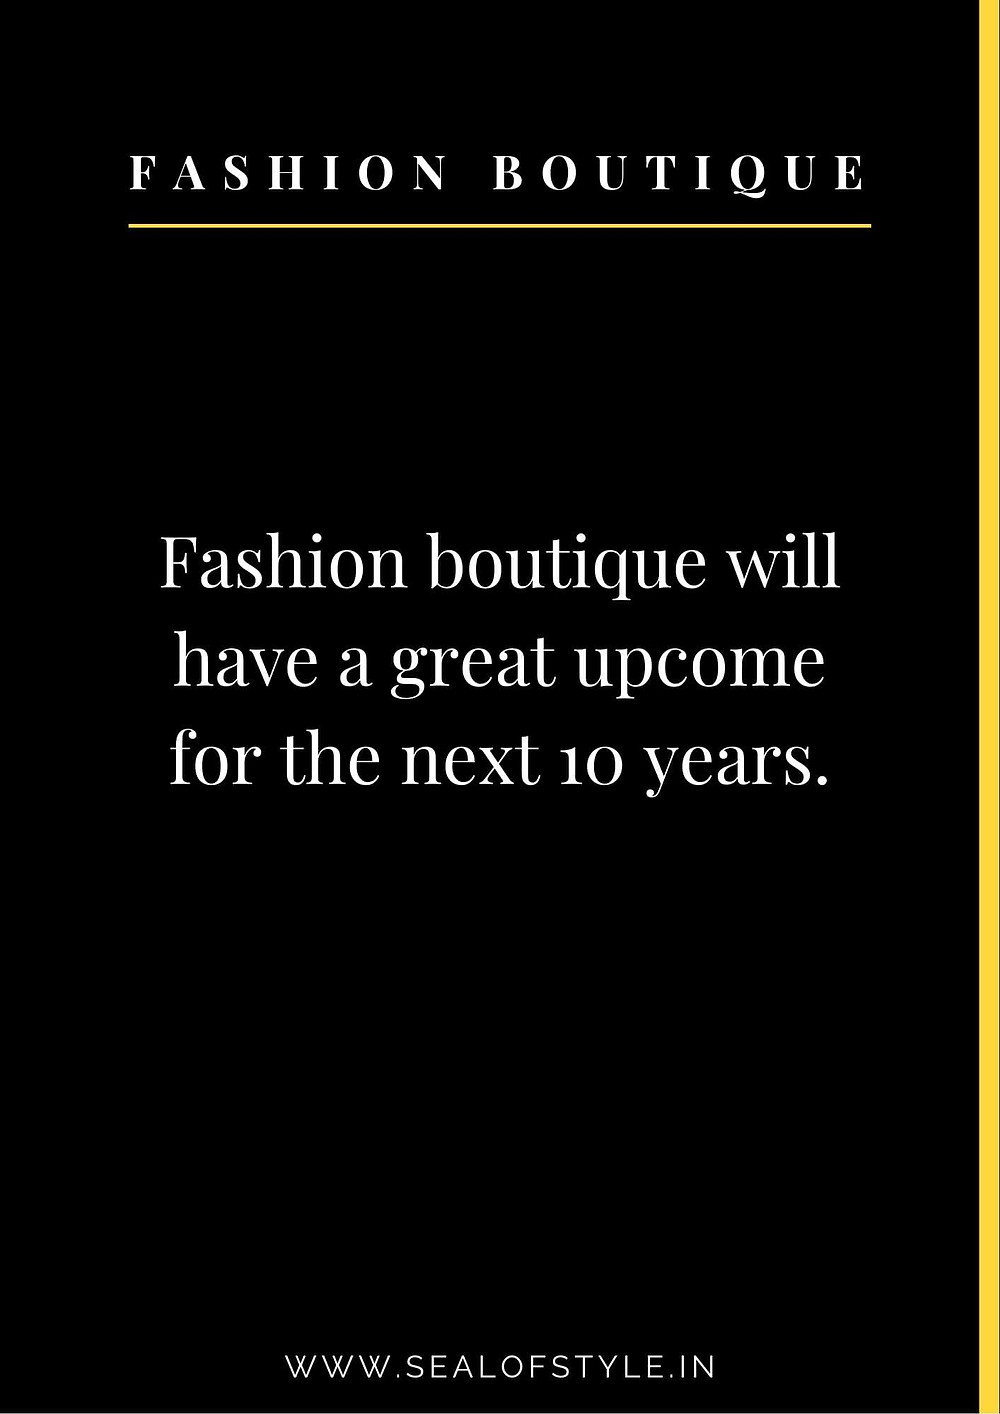 information about demand of dashion boutique in future